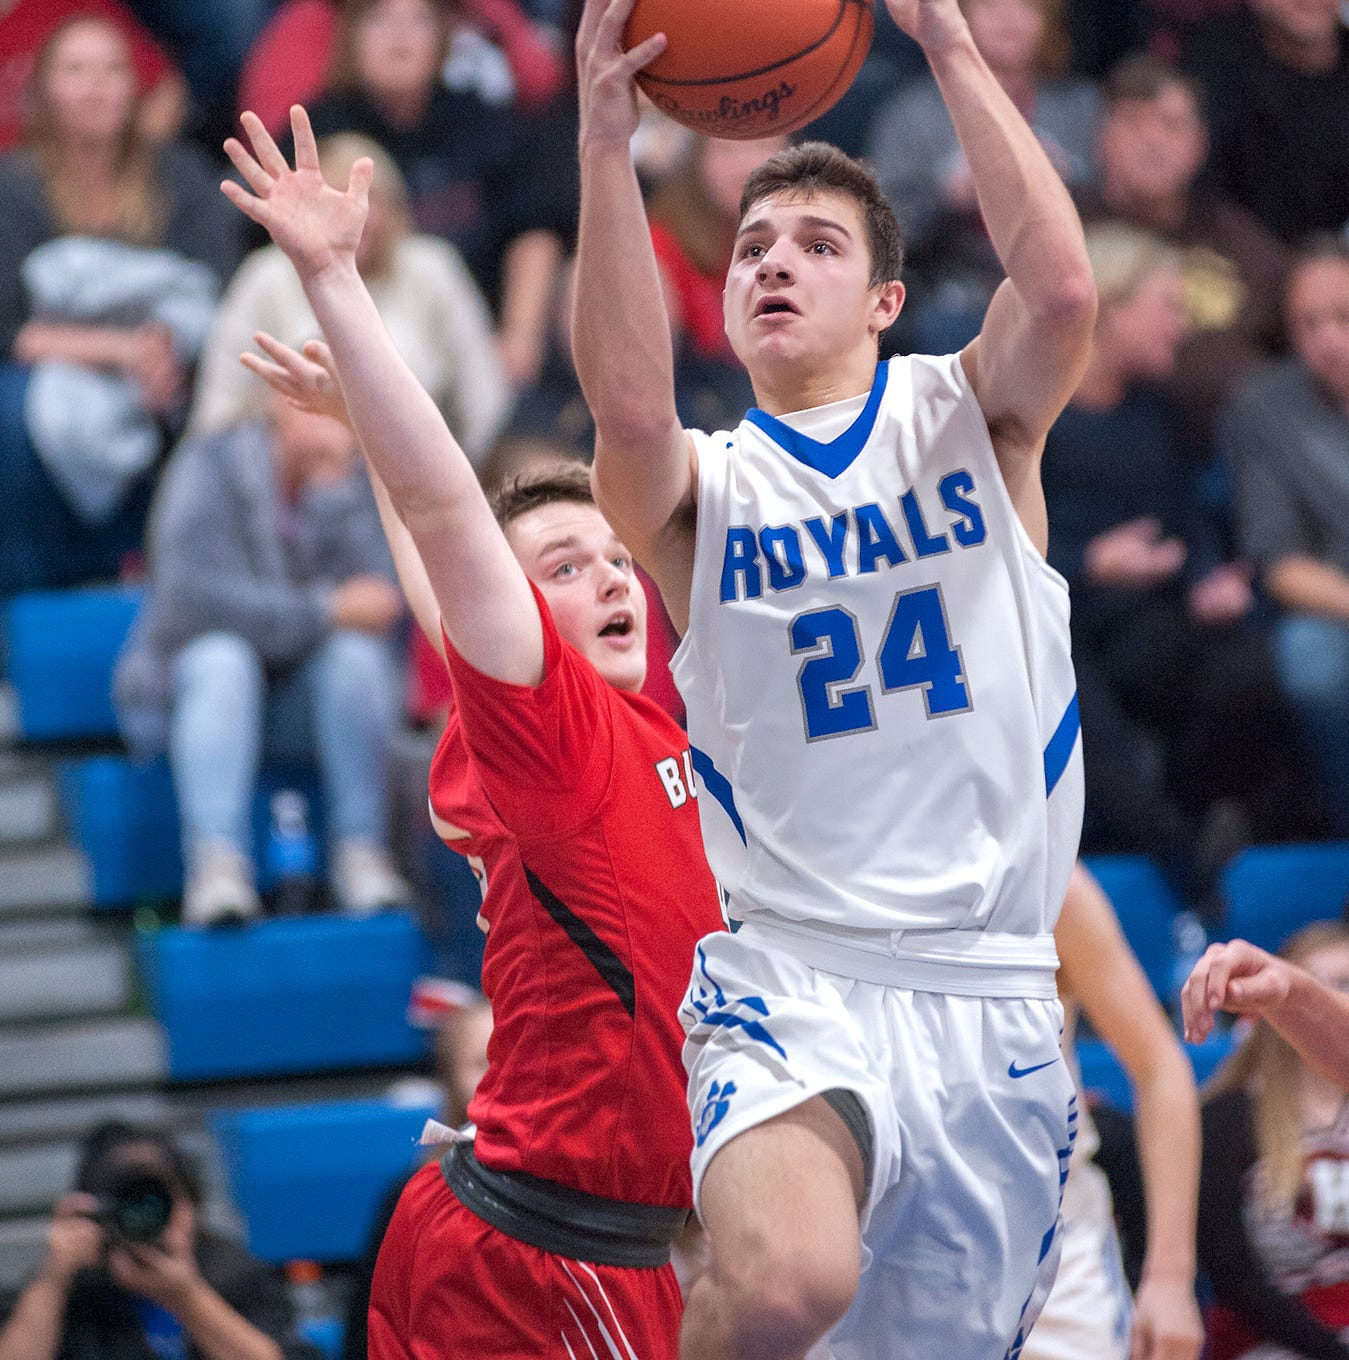 Crall's career night gives Royals first win of the season